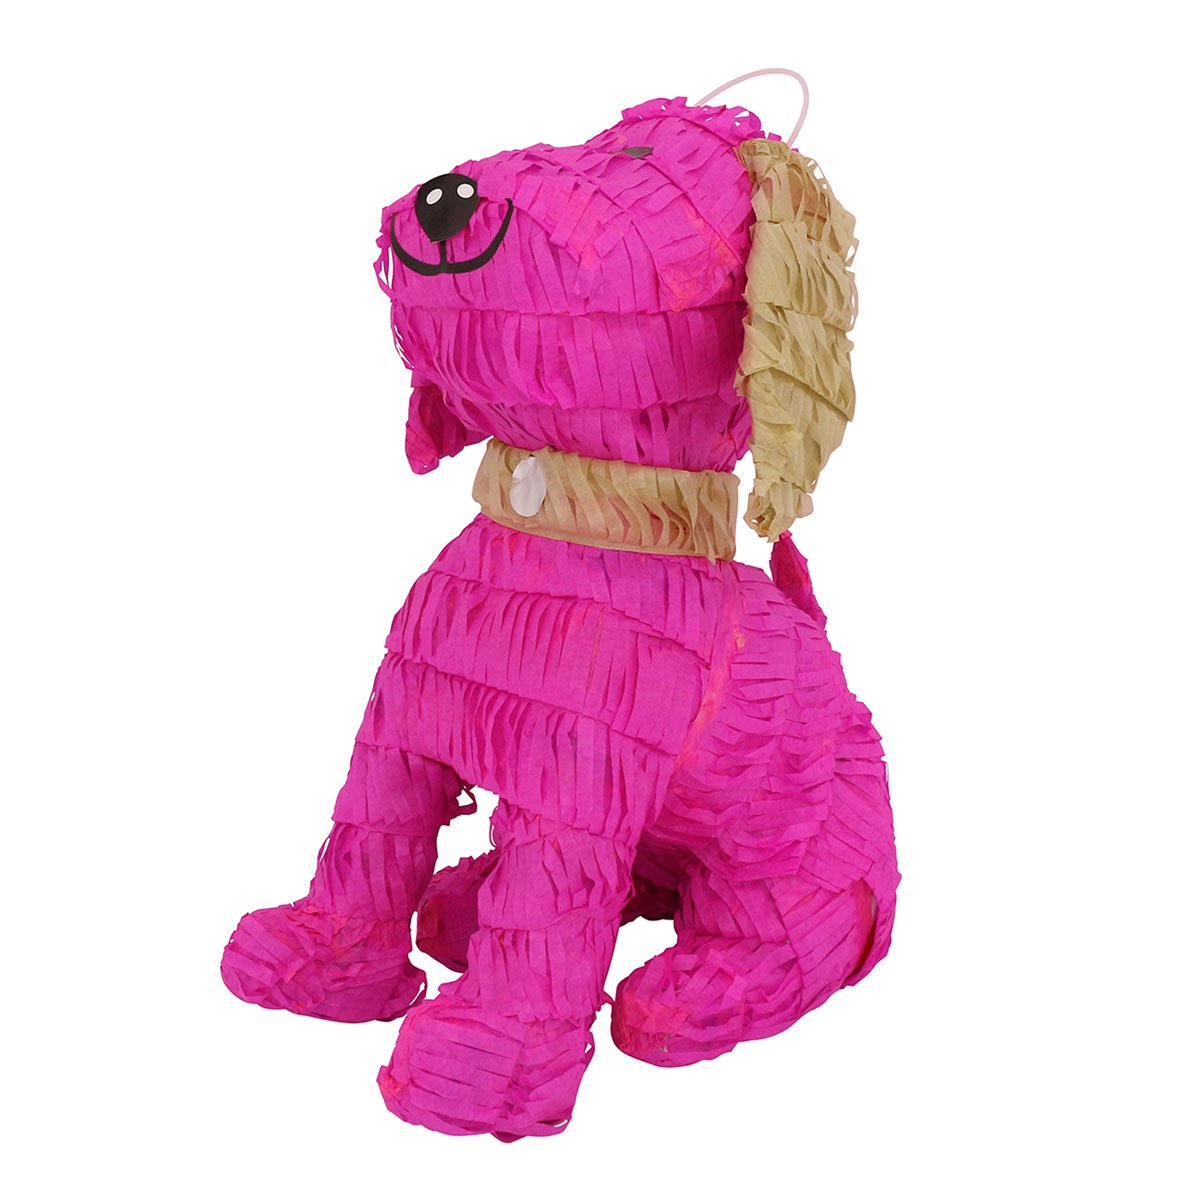 LYTIO – Cute Pink Dog Shaped Pinata with Light Brown Details (Piñata) Ideal for Animal Parties, Center Piece, Photo Prop and Décor